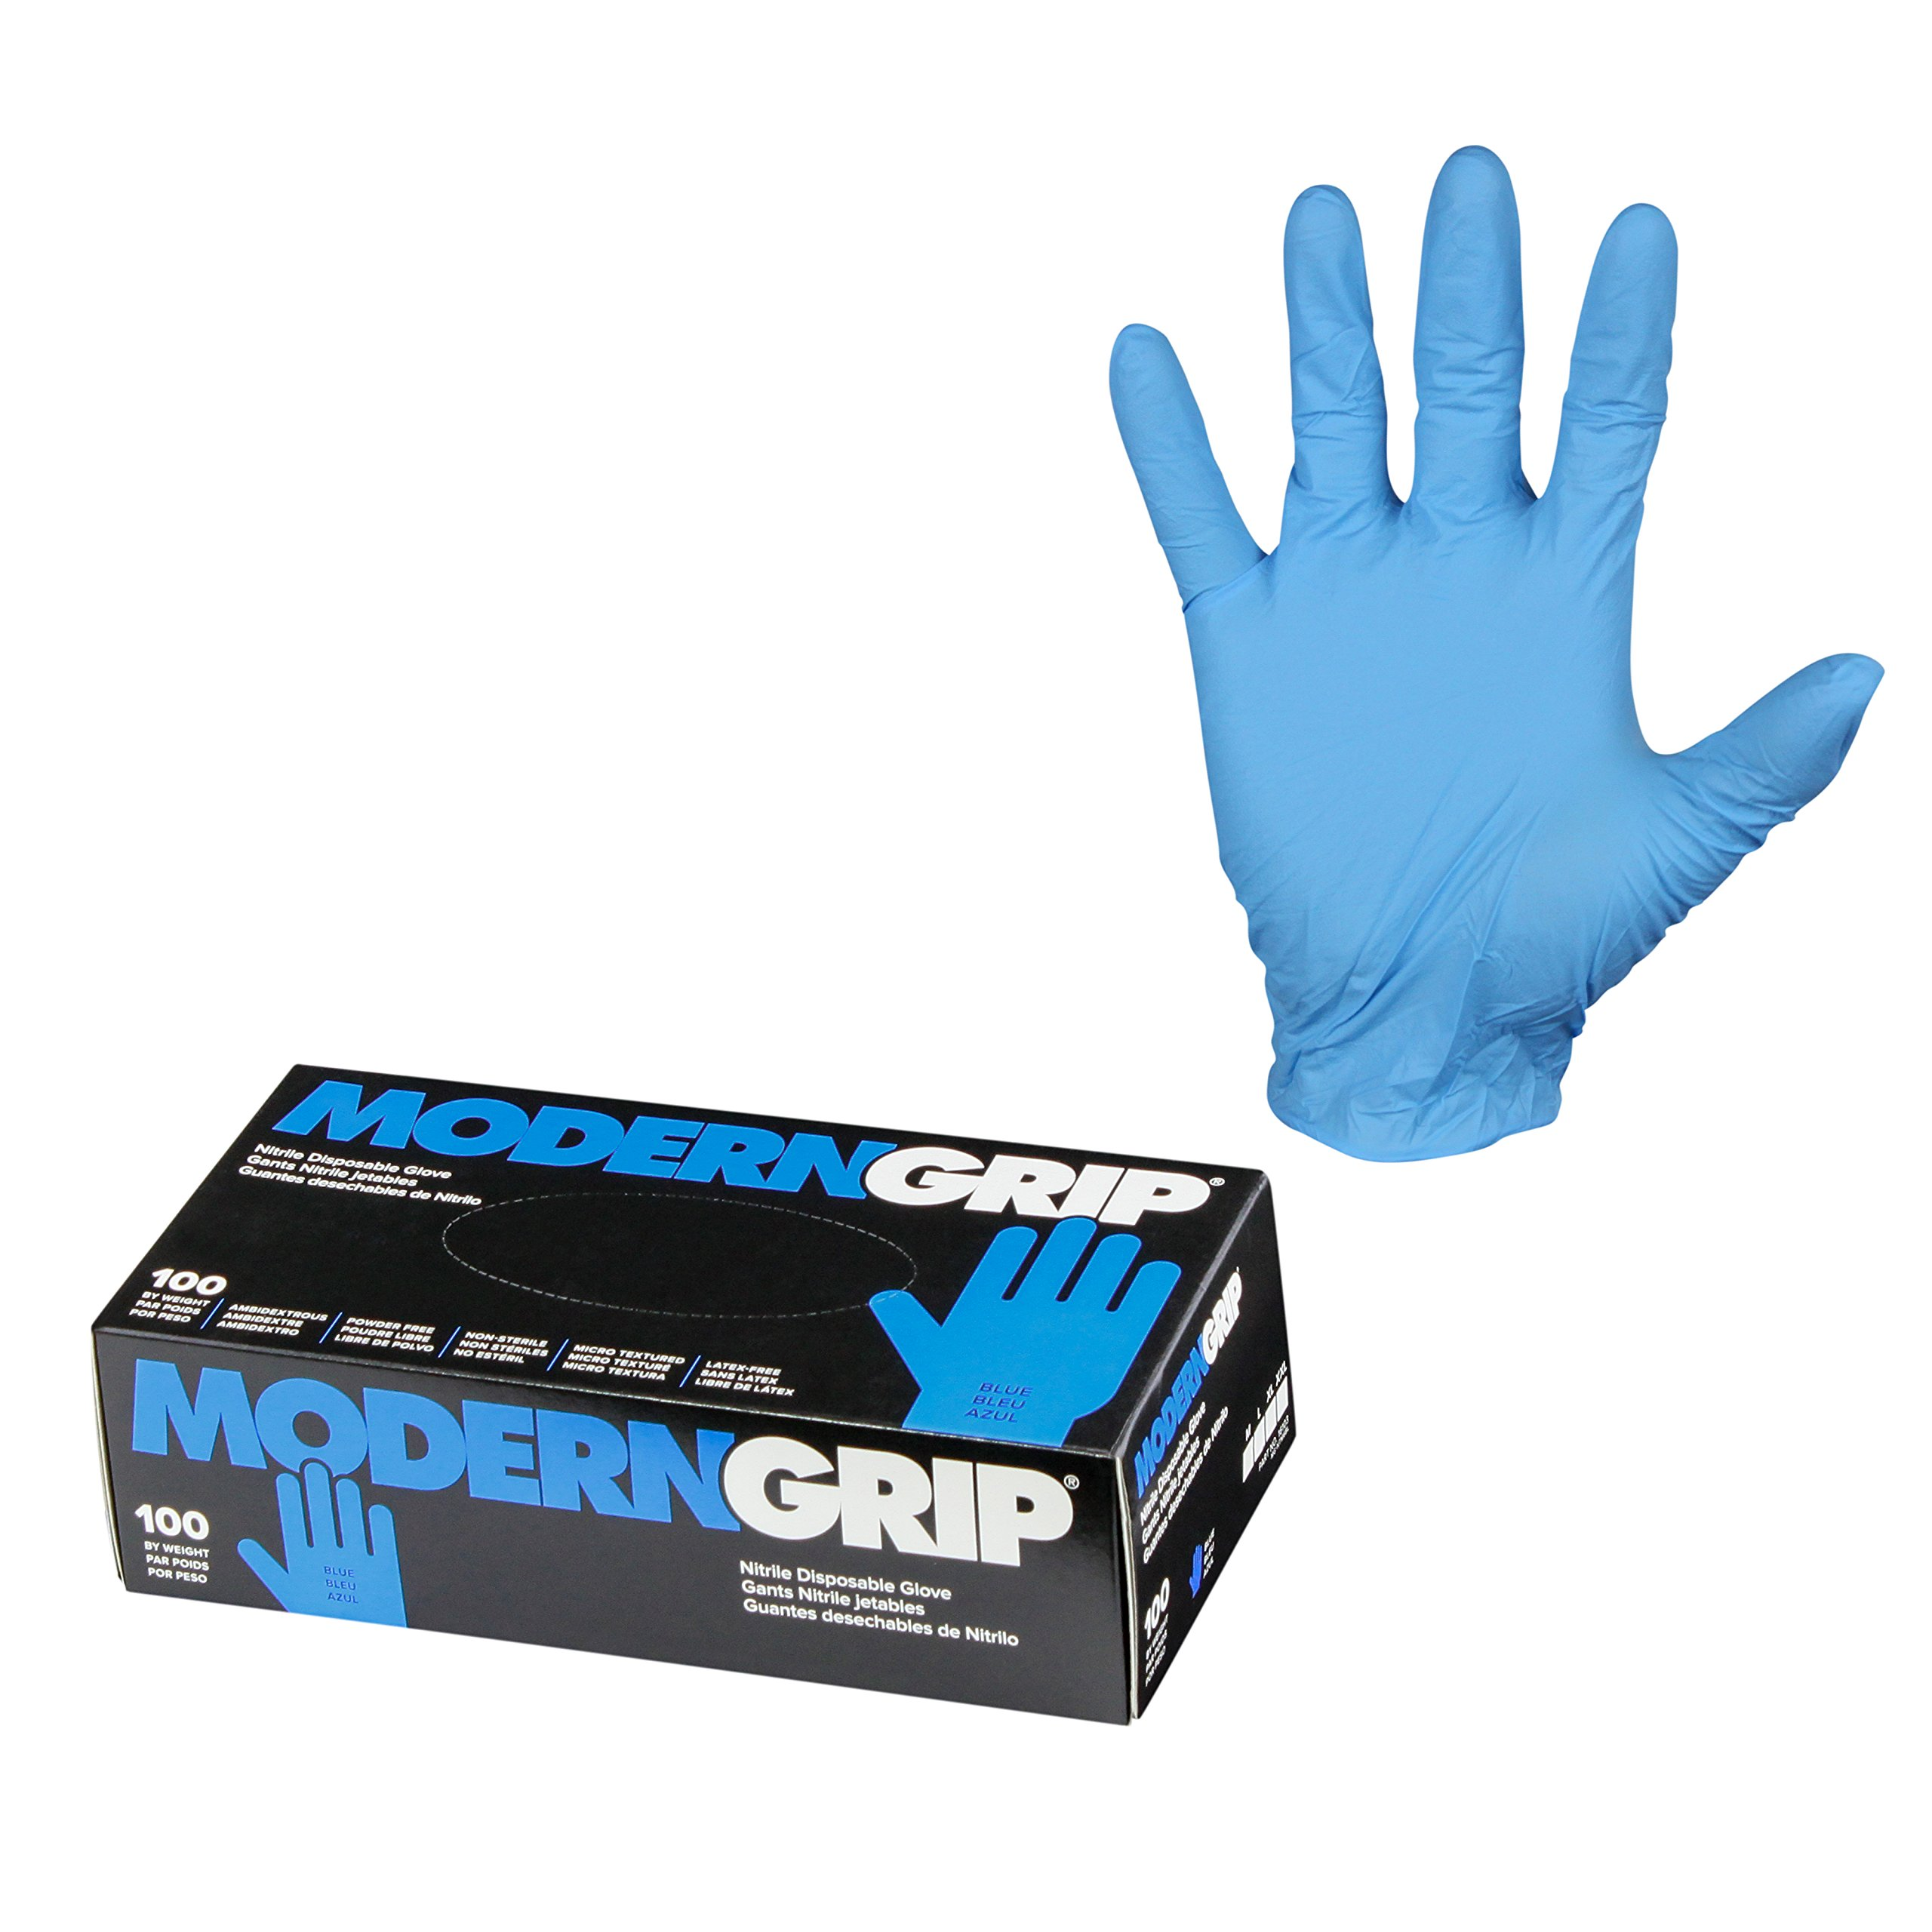 Modern Grip 16103-XL Nitrile 6 mil Thickness Premium Disposable Gloves – Industrial and Household, Powder Free, Latex Free, Micro Textured for Superior Grip - Blue - X-Large (100 count)